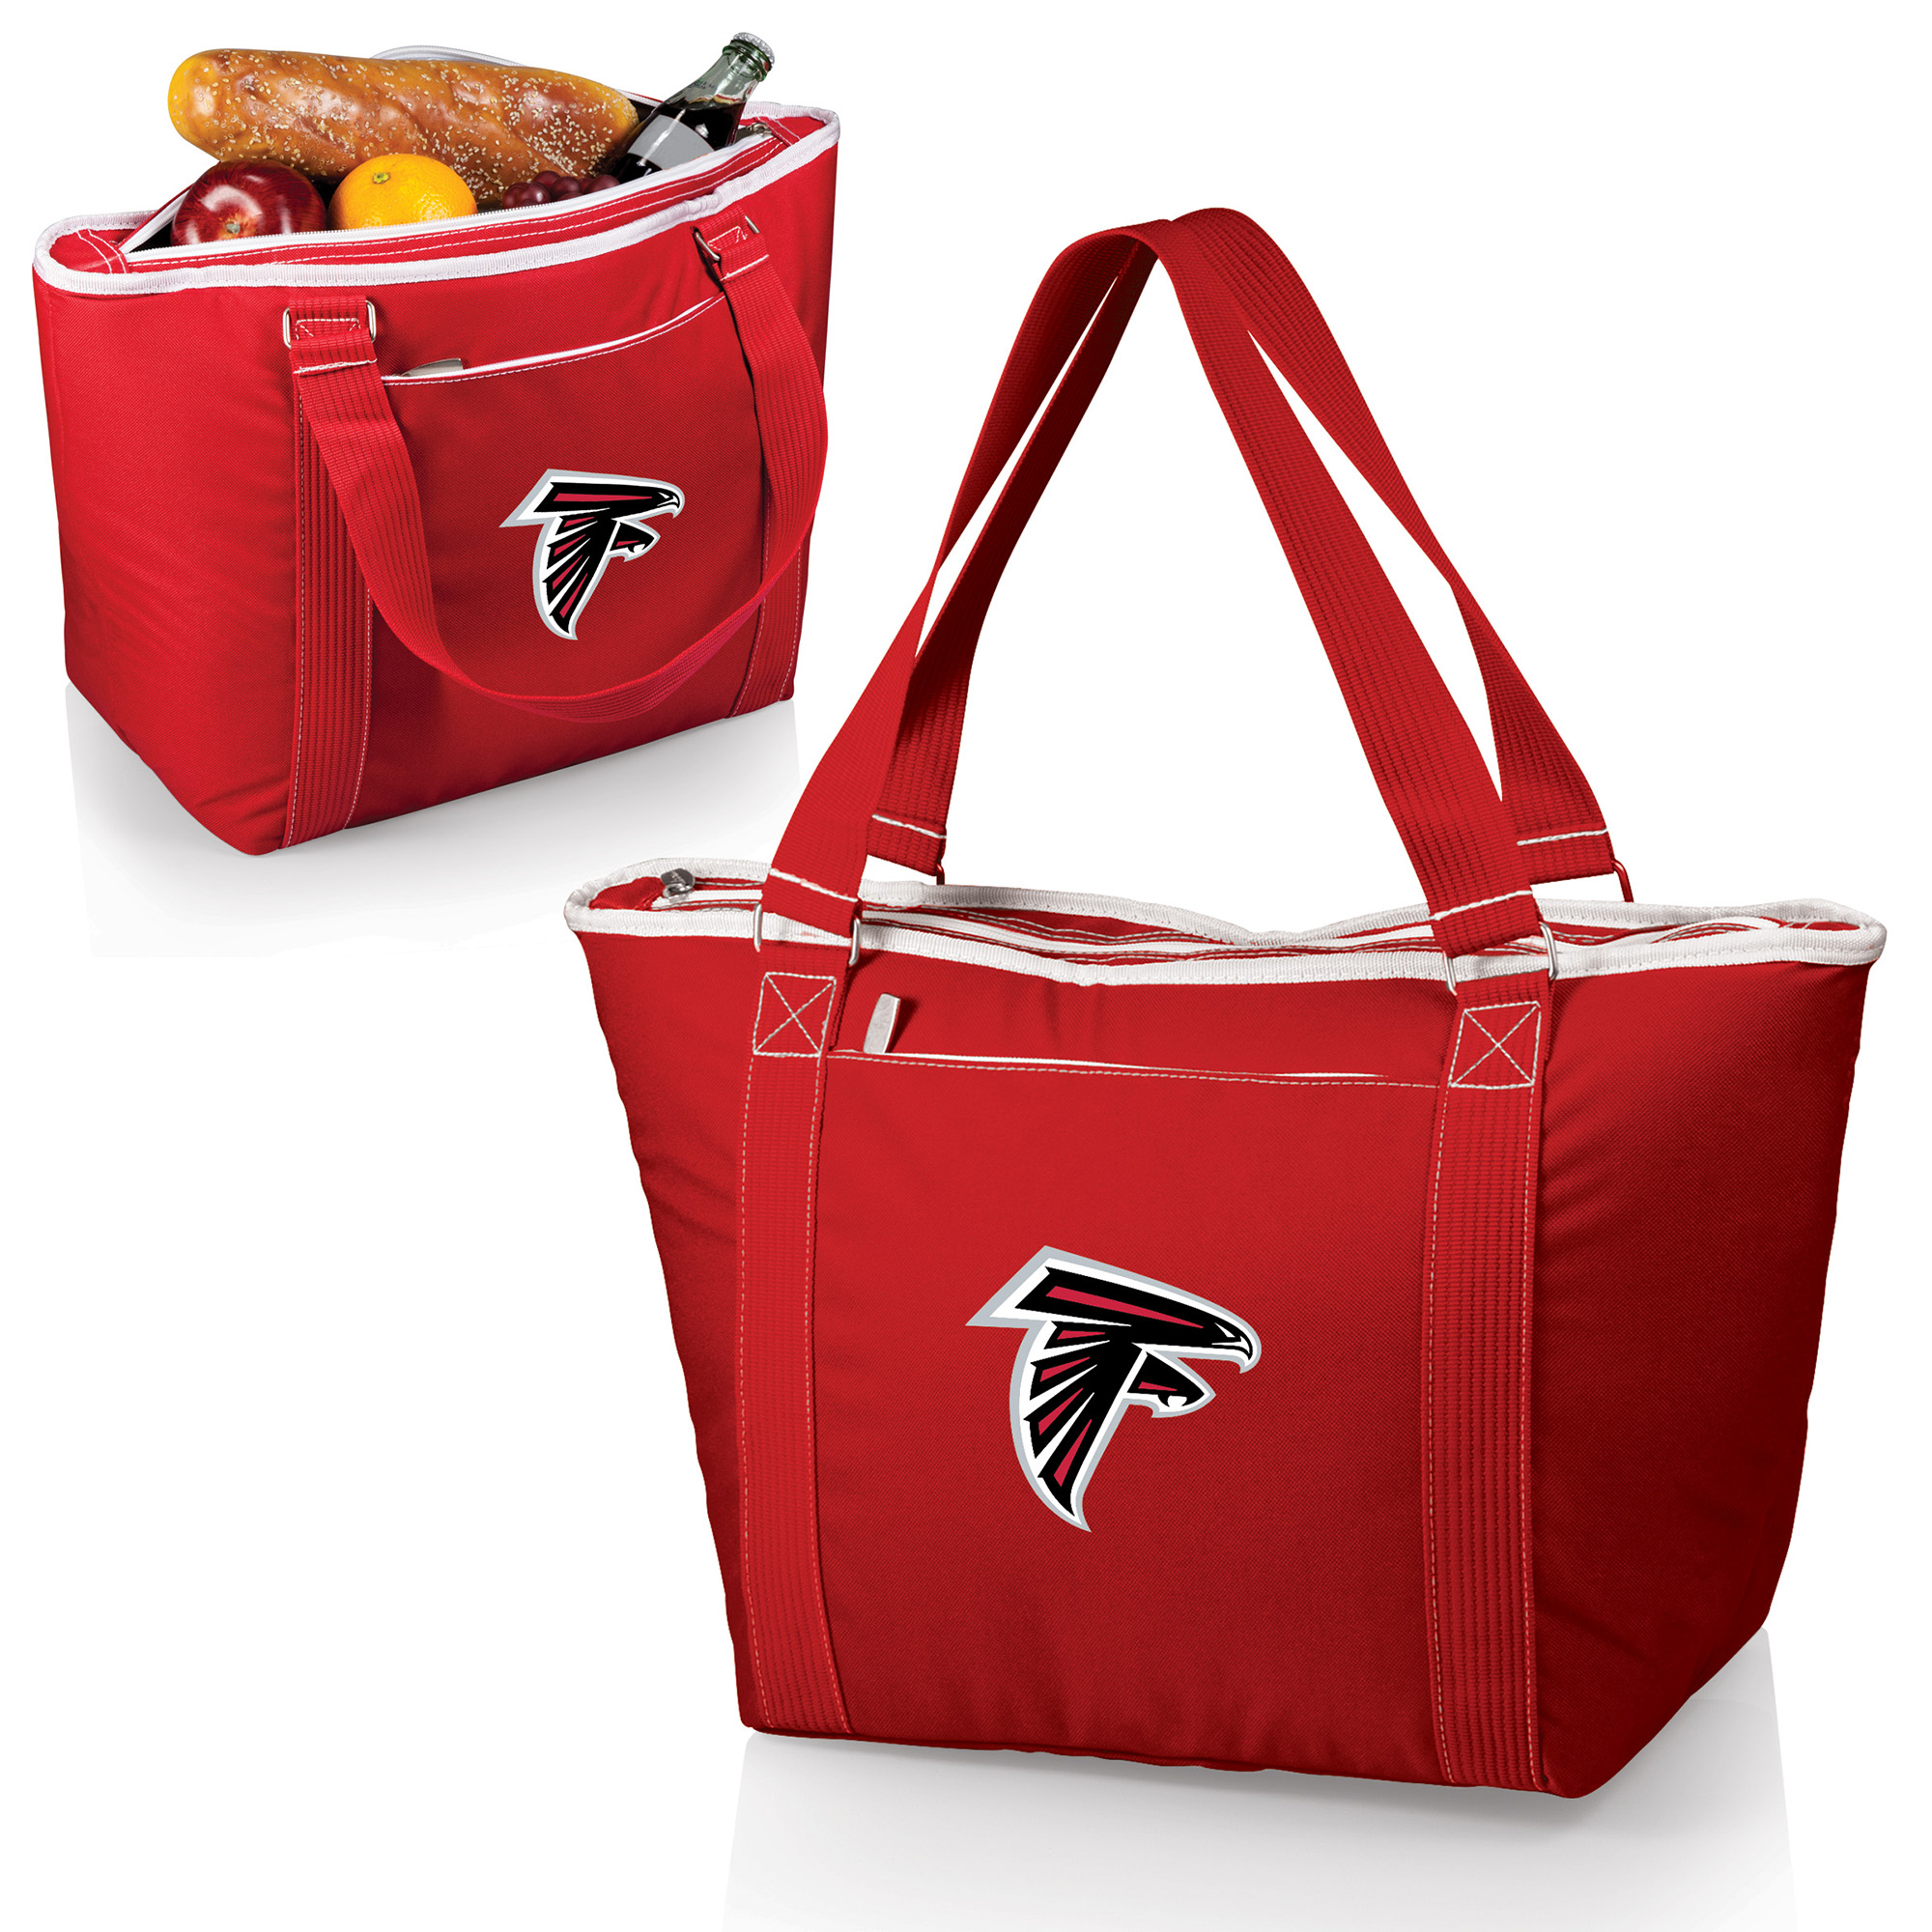 Atlanta Falcons Topanga Cooler Tote - Red - No Size